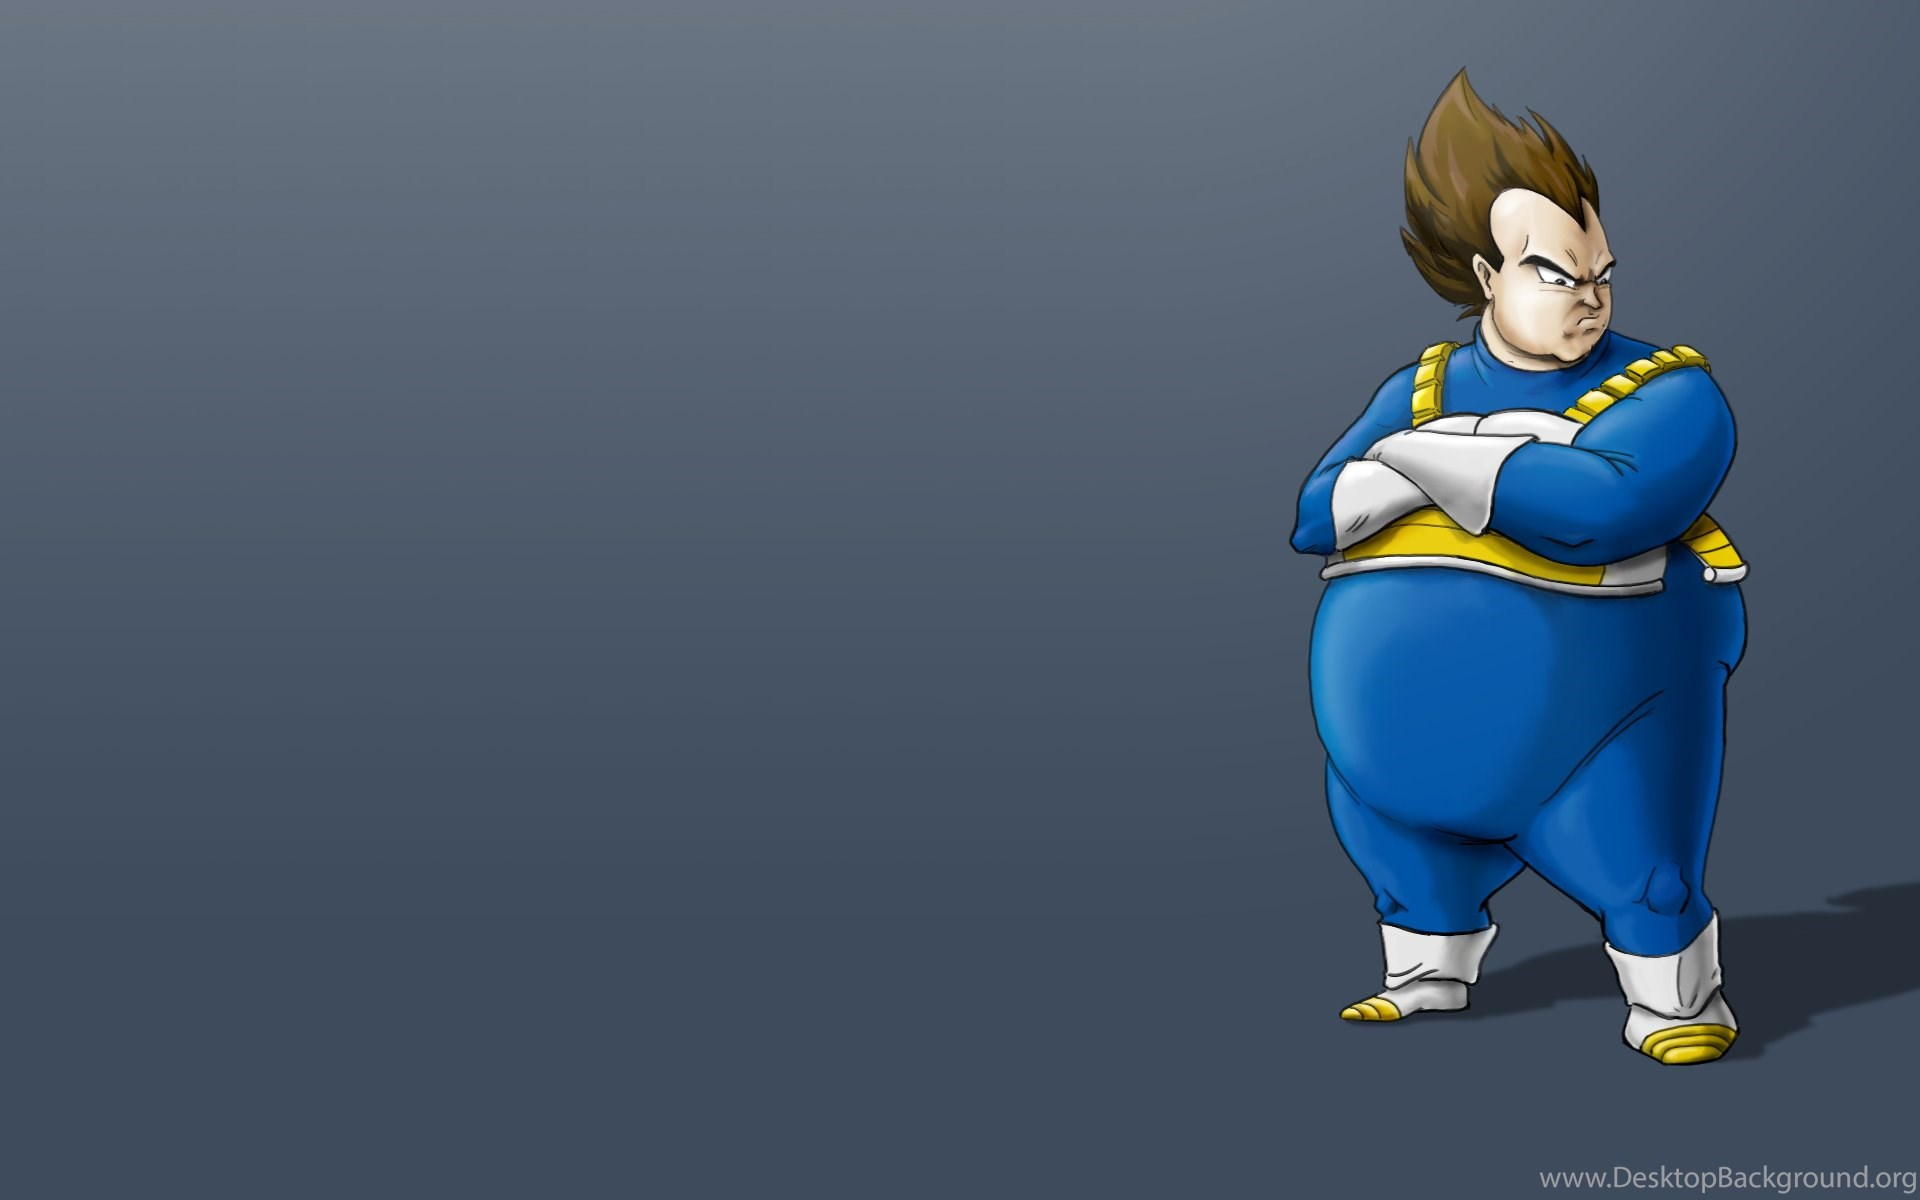 Dragon Ball Z Vegeta Iphone Wallpapers Hd Wallpapers Gallery Desktop